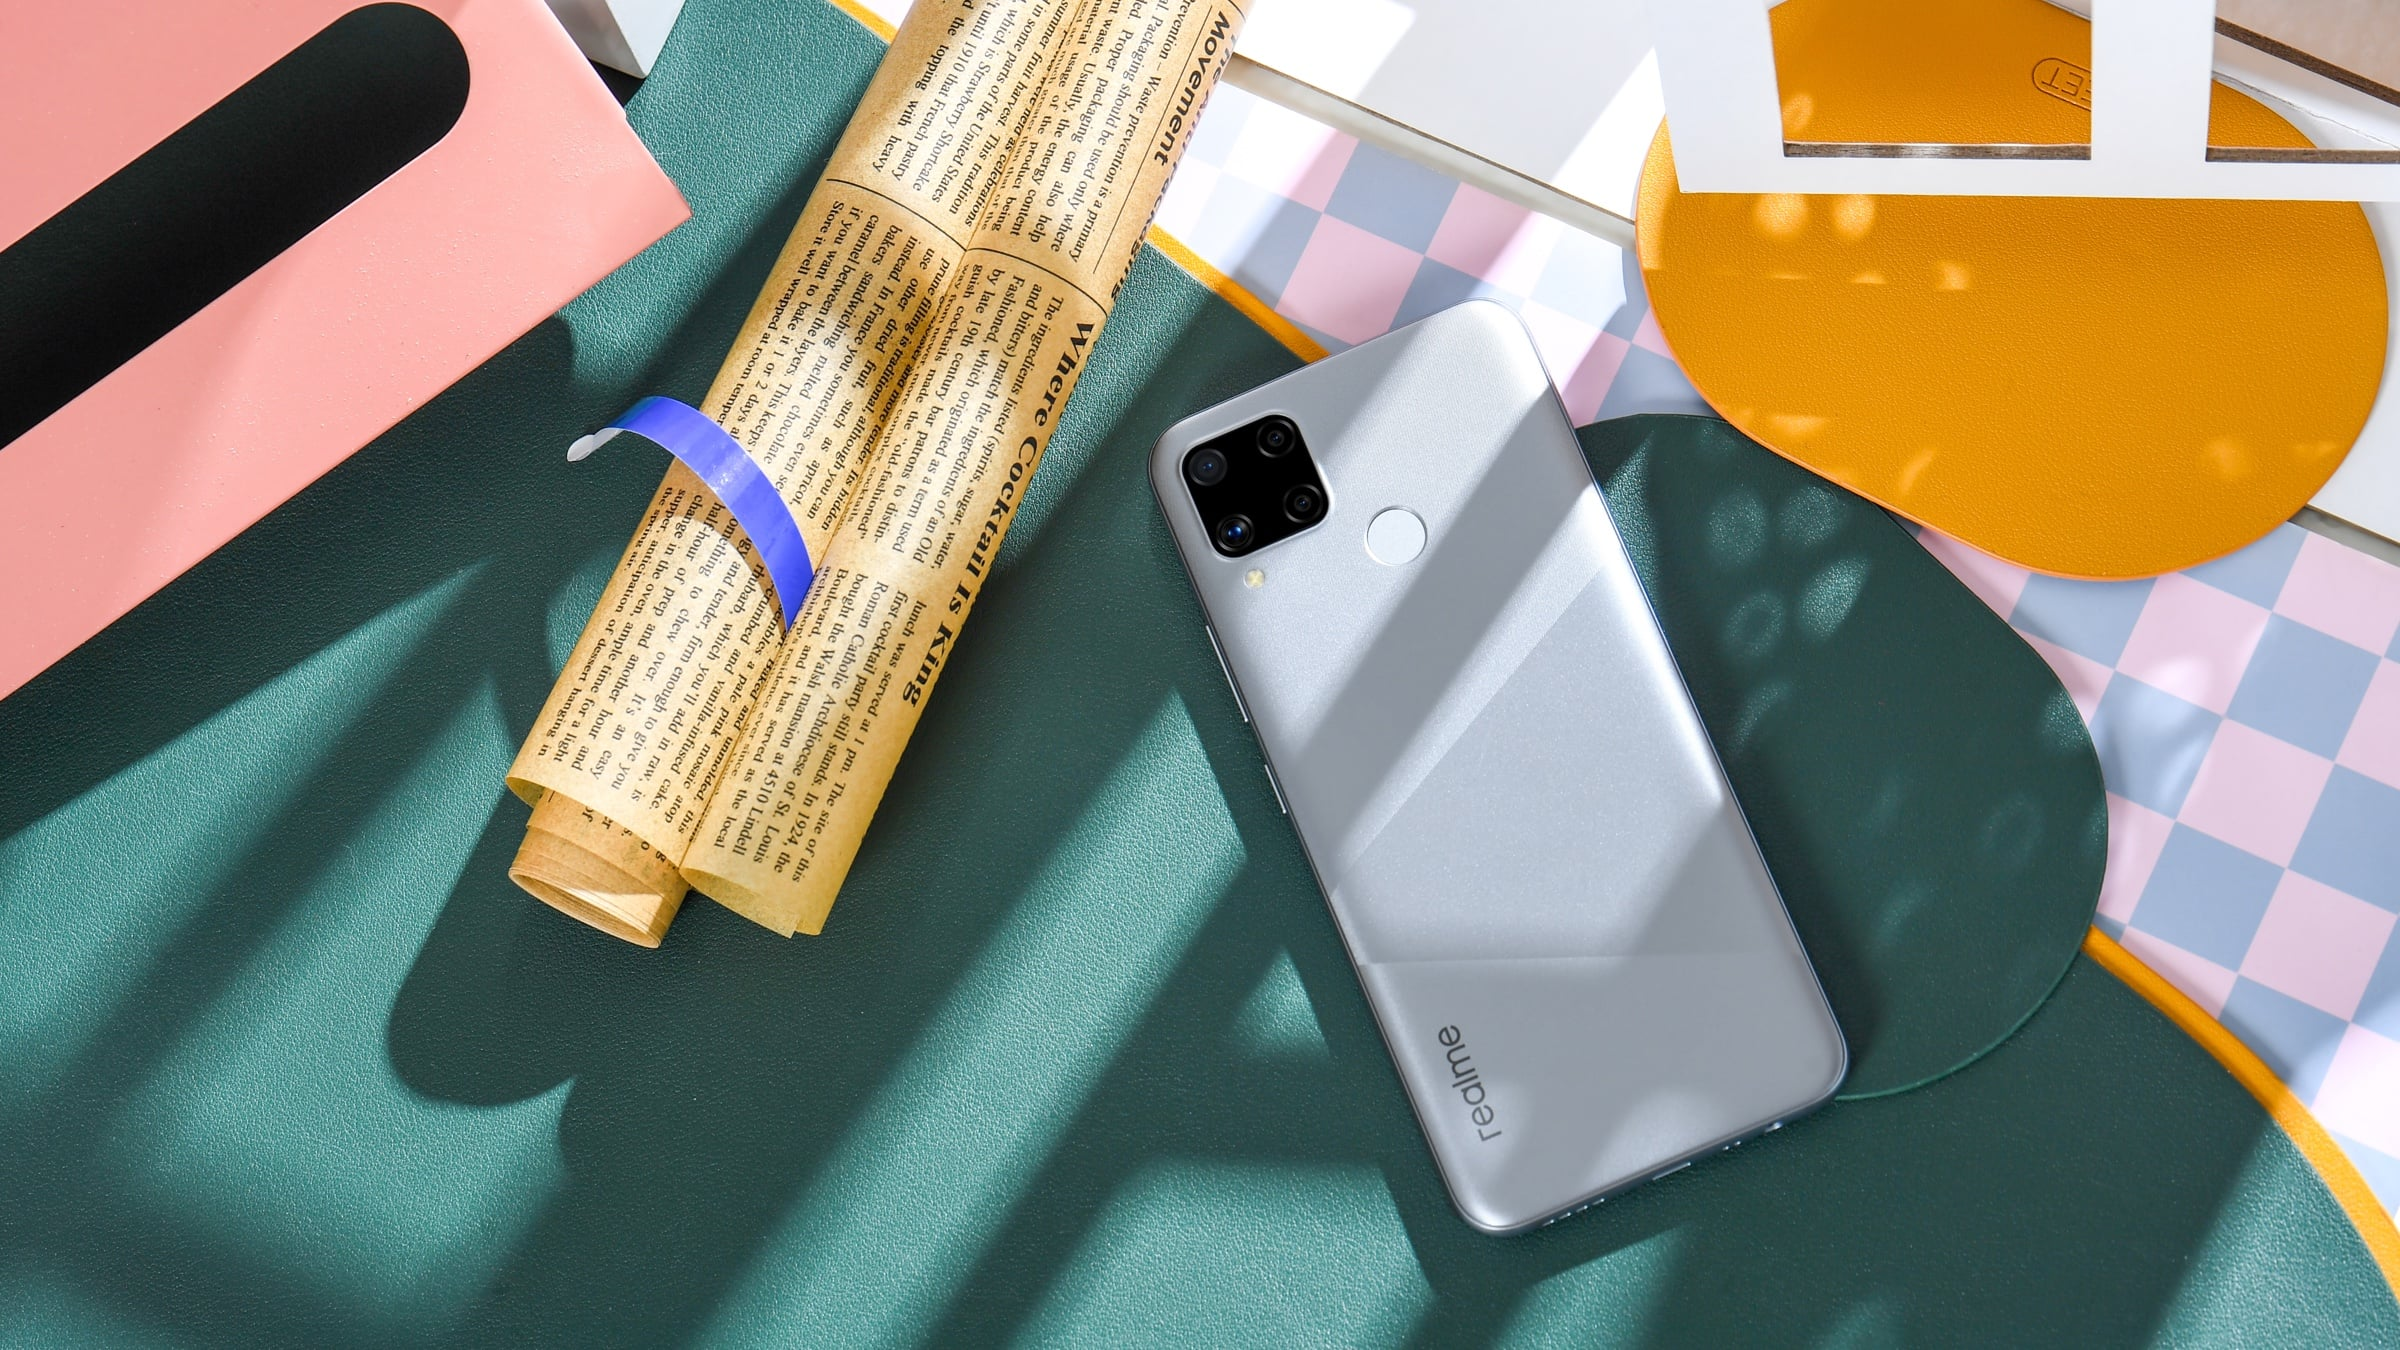 sunny 3bb57f5161 - Realme C15 Price, Review, And Full Specs